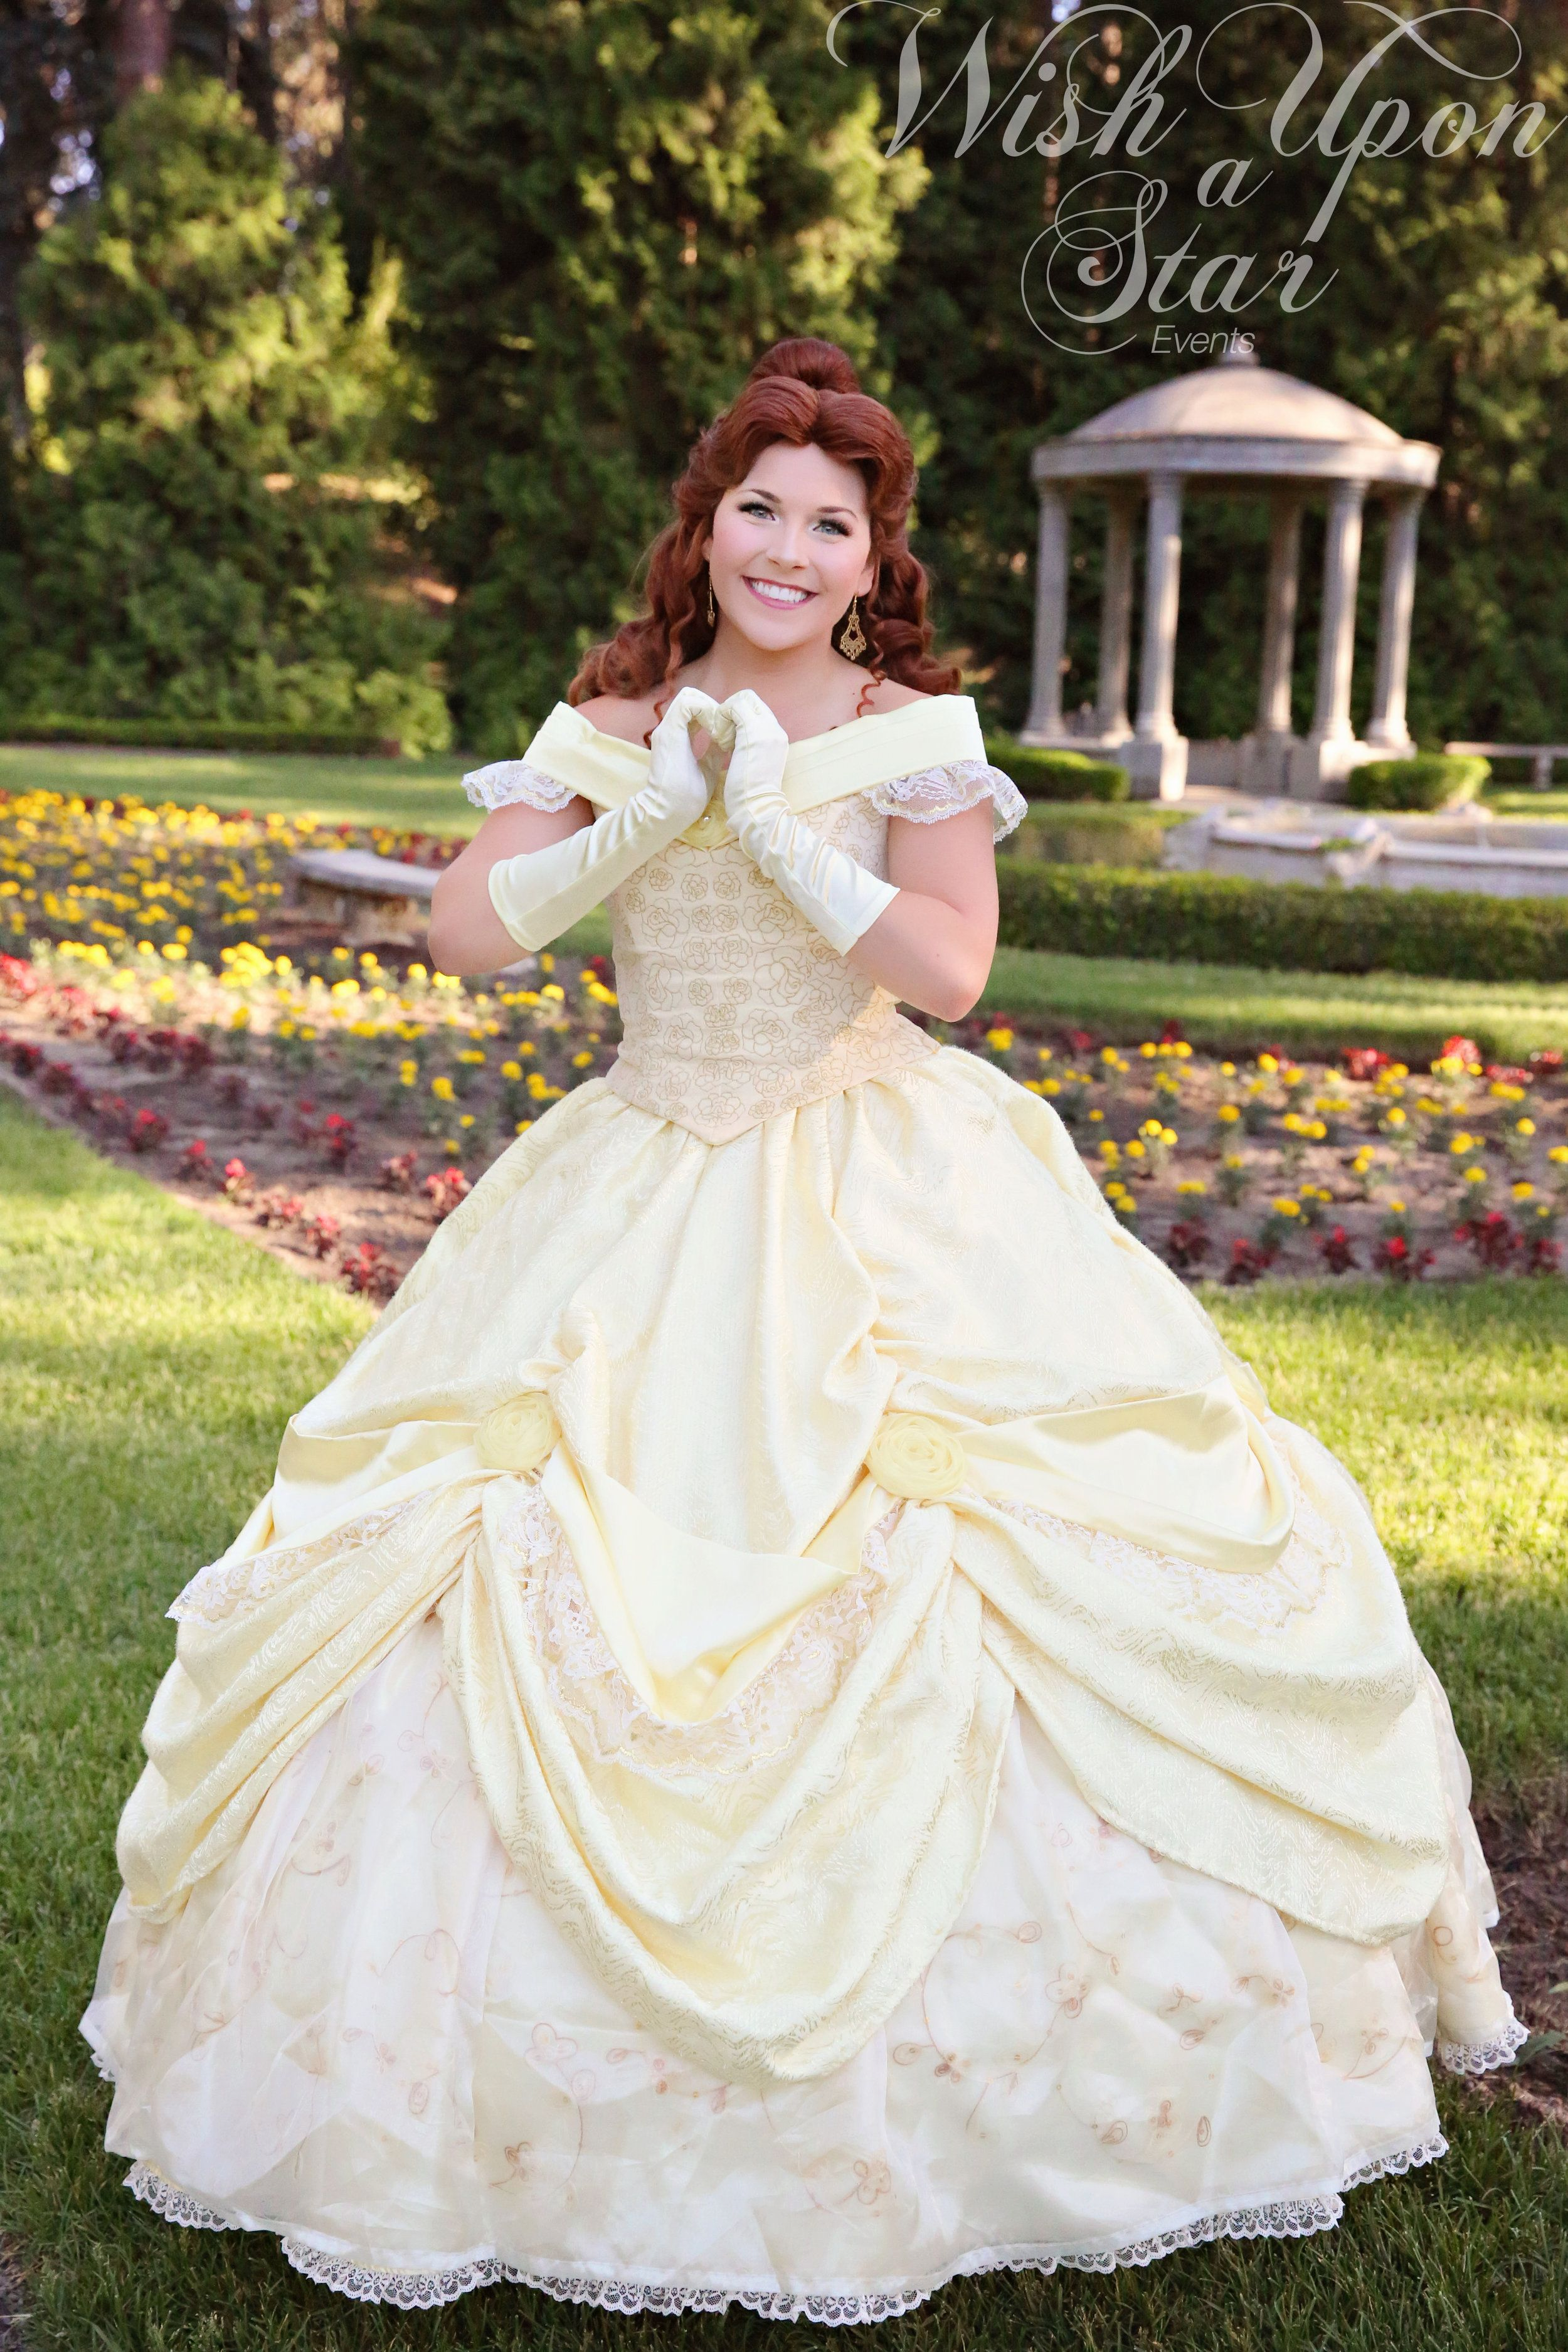 Disney wedding dresses jasmine  We are Hiring Female Performers  Princess Disney cosplay and